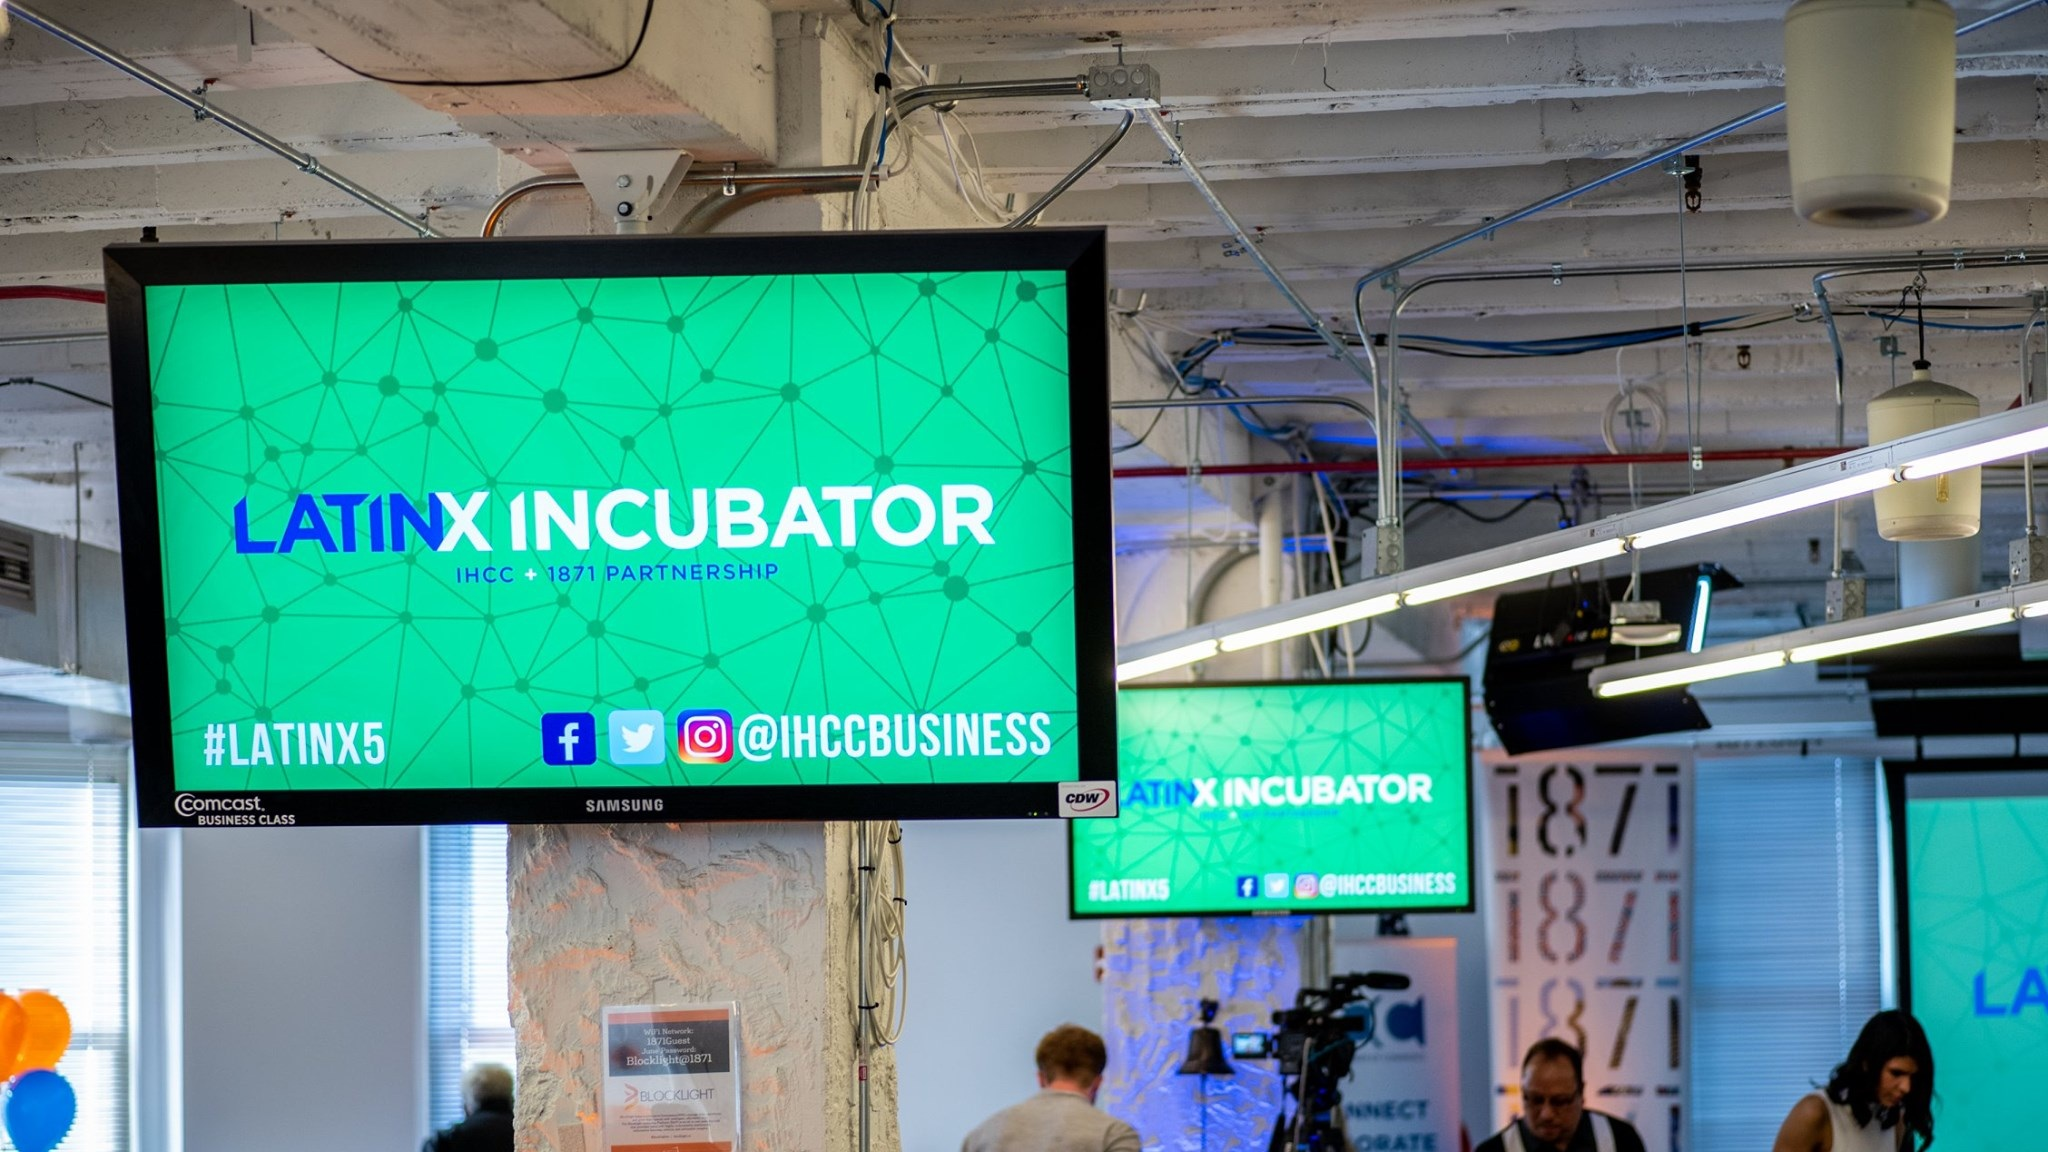 The Latinx Incubator is a first-of-its kind partnership between IHCC and 1871. The mission of the incubator is to grow the pipeline of Latinx entrepreneurs participating in and contributing to the Chicago tech and innovation economy.